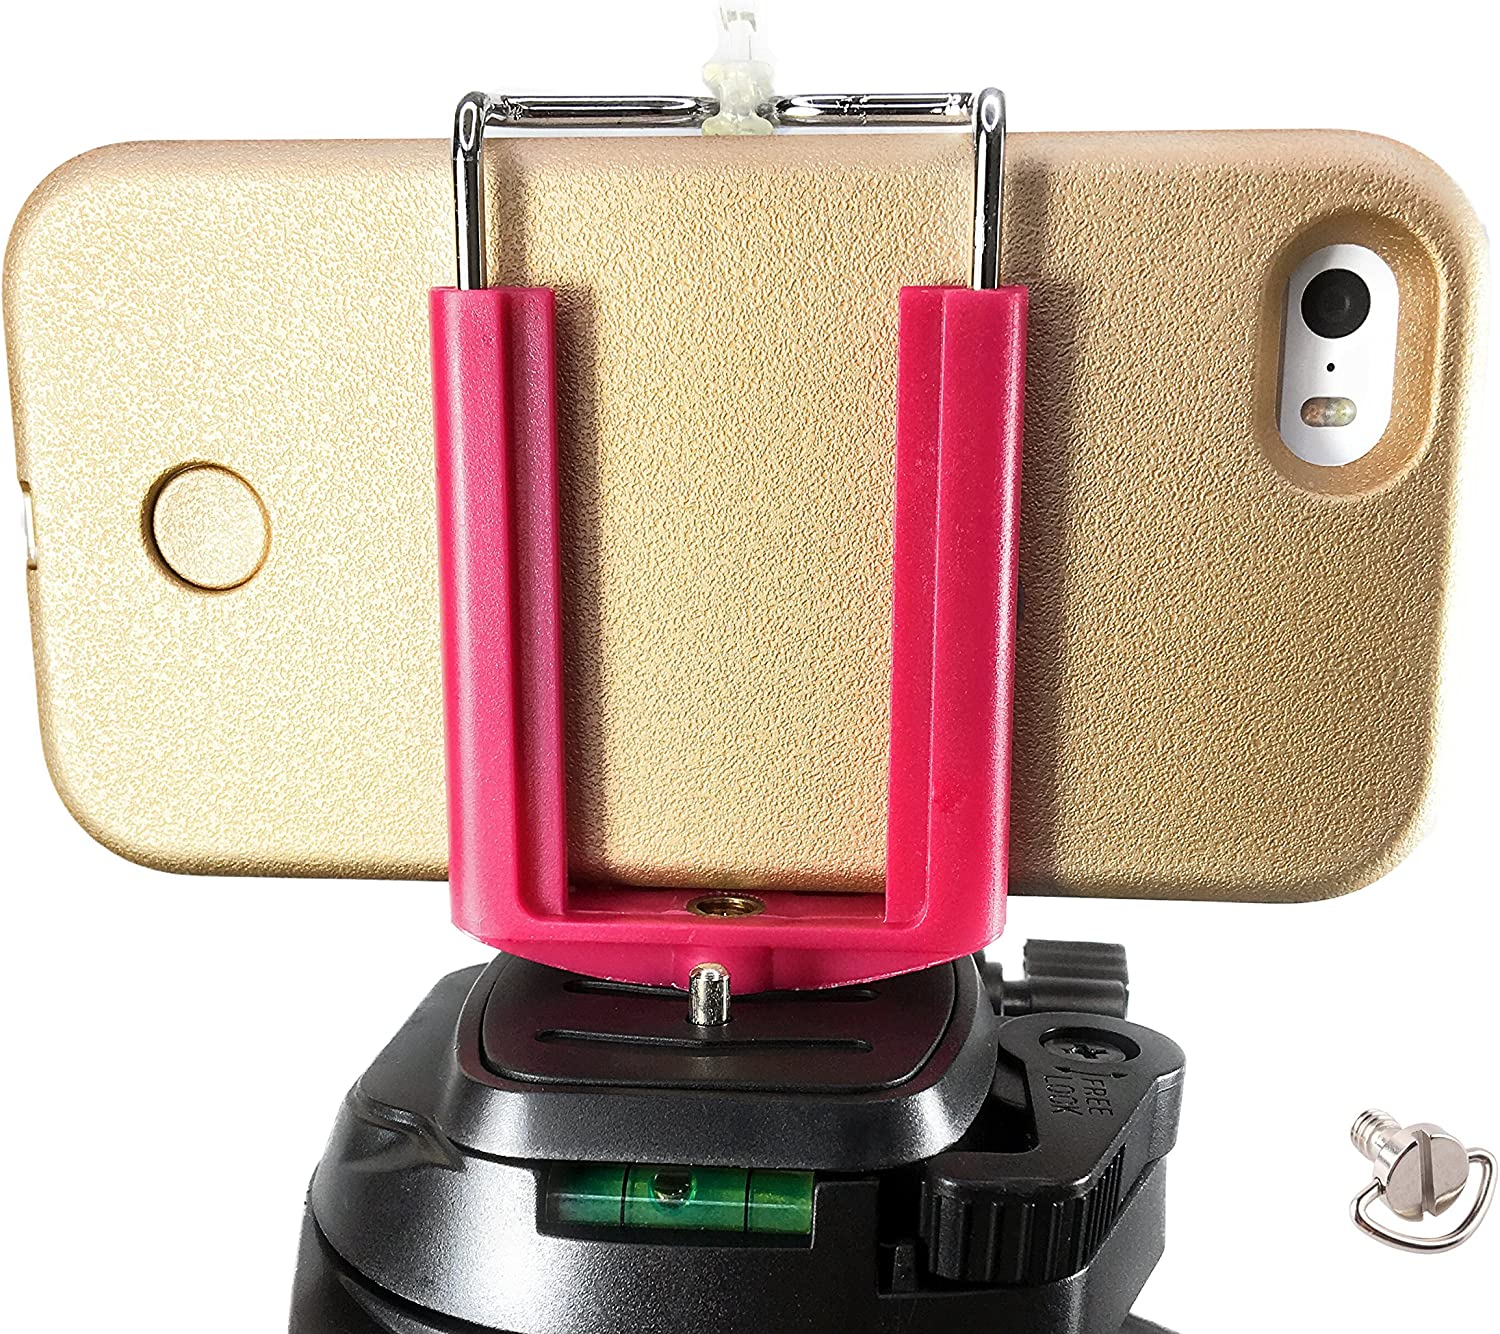 DaVoice Cell Phone Tripod Adapter Mount Holder Clamp Compatible with iPhone X XS Max XR Se 8 7 6 6s Plus Samsung Galaxy S9 S8 S7 Edge Adjustable Smartphone Bracket Clip Cellphone Attachment (Fuchsia)